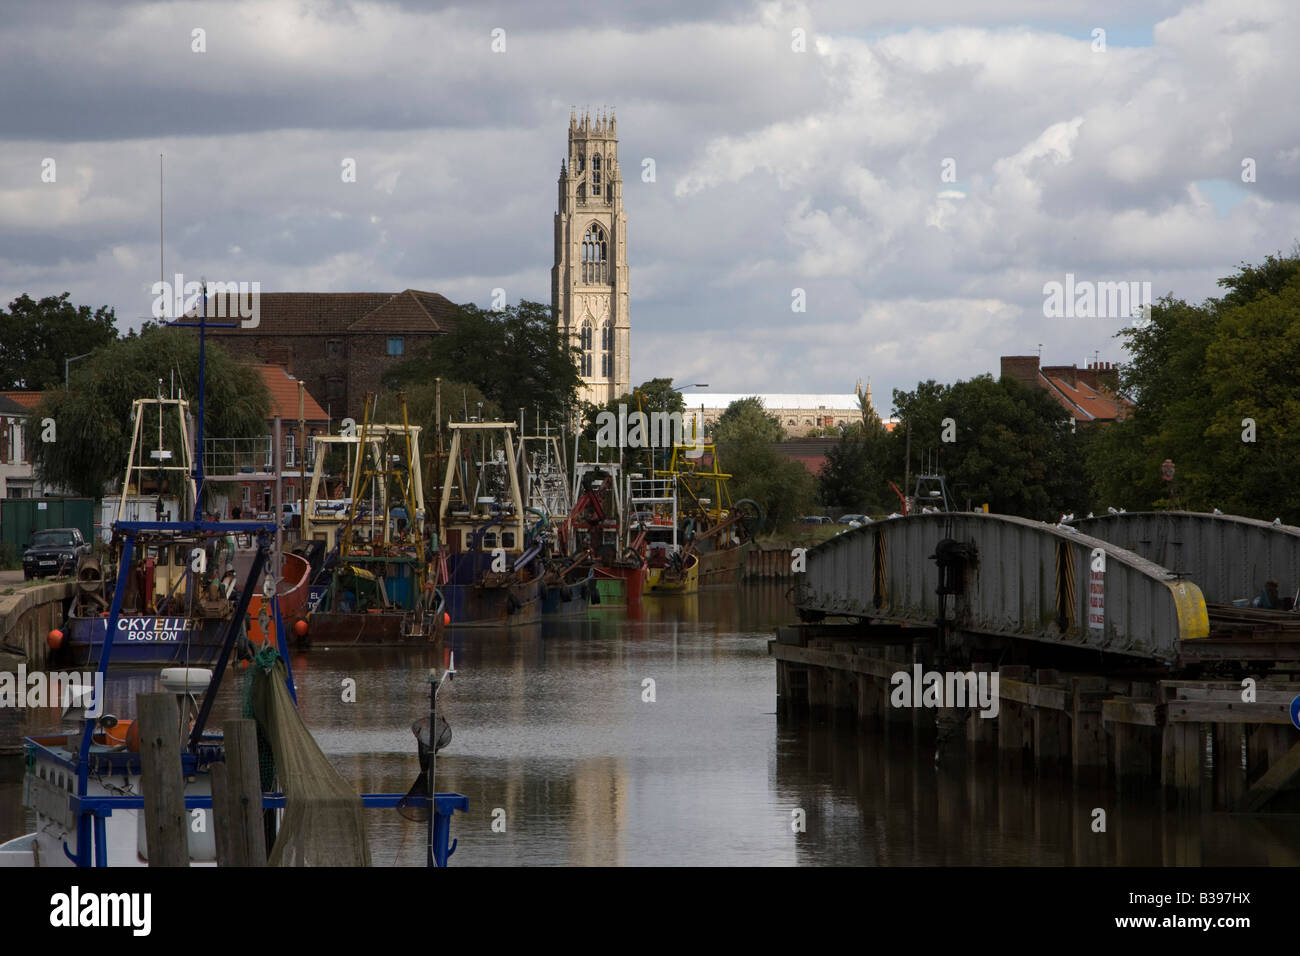 Le Haven boston lincolnshire angleterre bateaux riverside Photo Stock